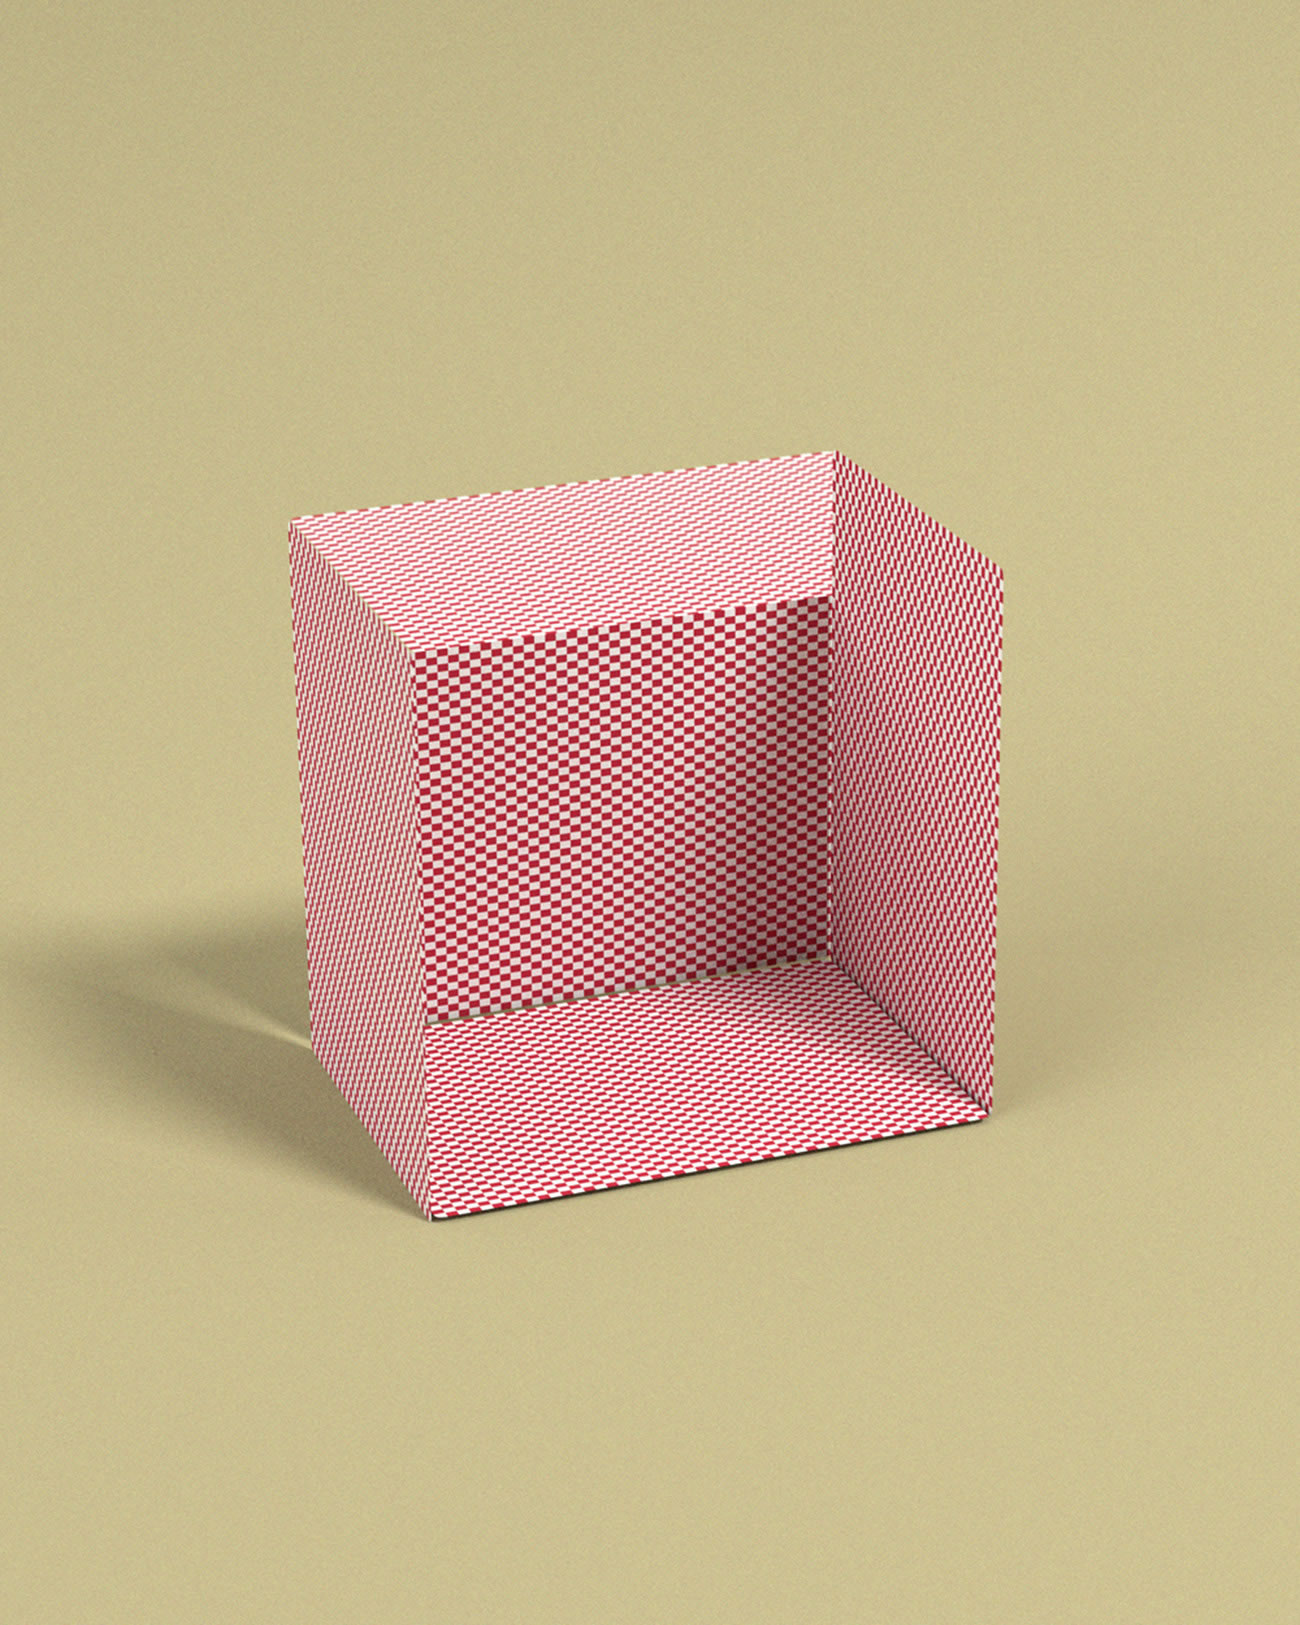 playing card illusion box by zachary norman